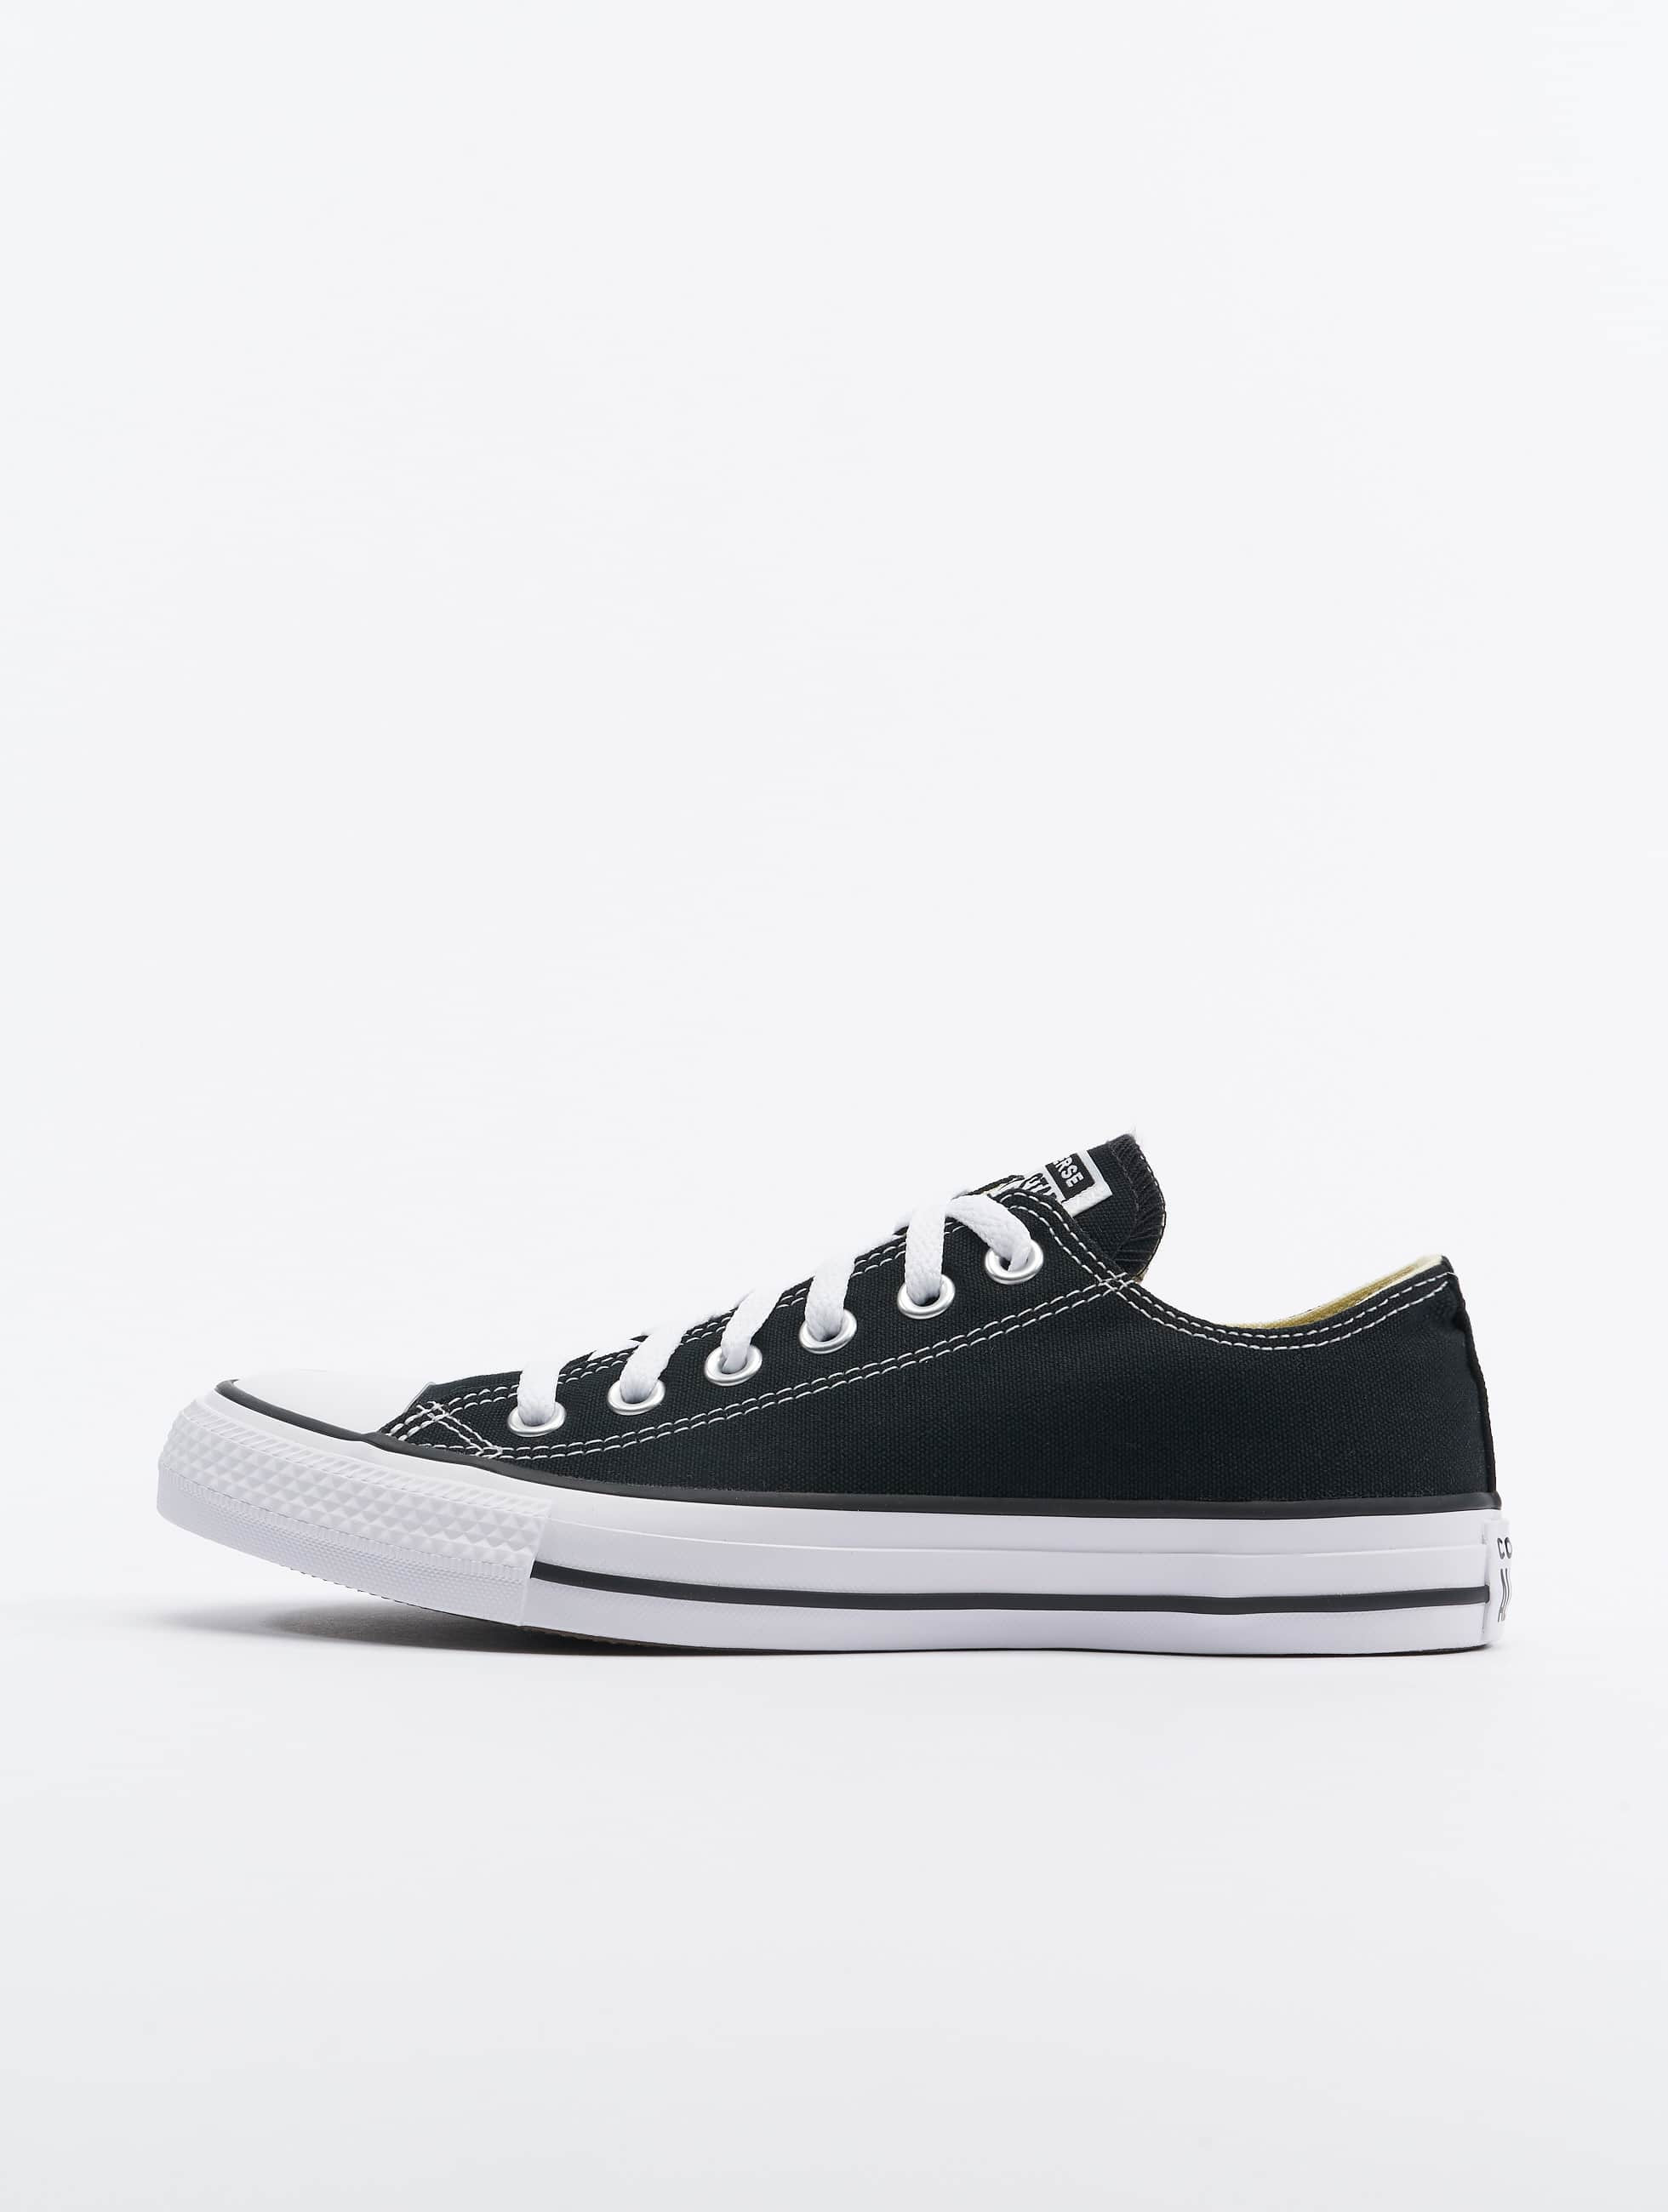 converse herren schuhe sneaker all star dainty ox chucks. Black Bedroom Furniture Sets. Home Design Ideas